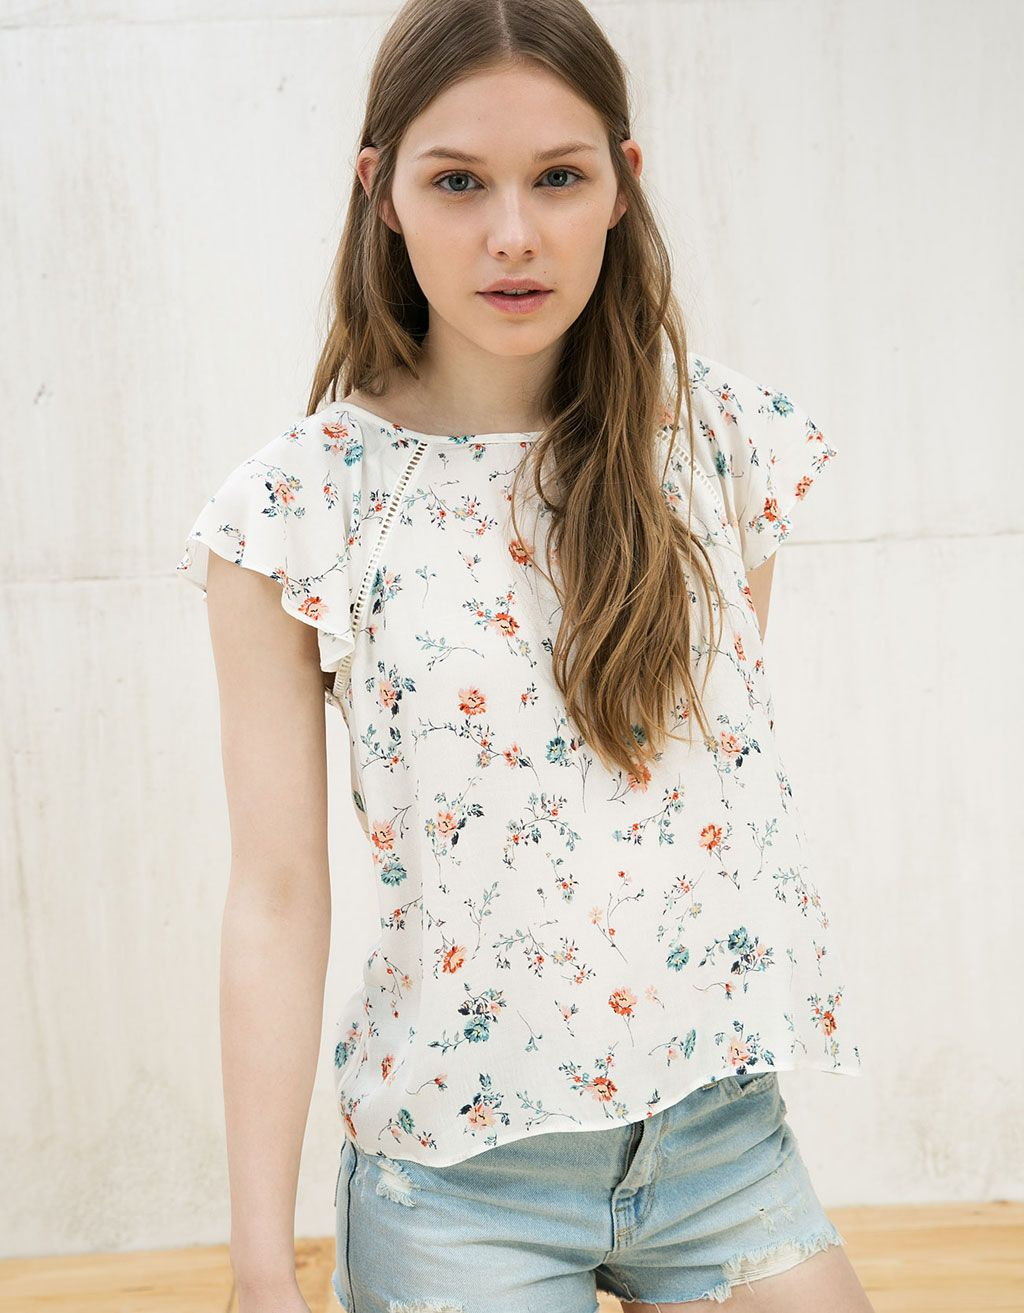 Printed top with ruffles and lace detail - null - Bershka Israel